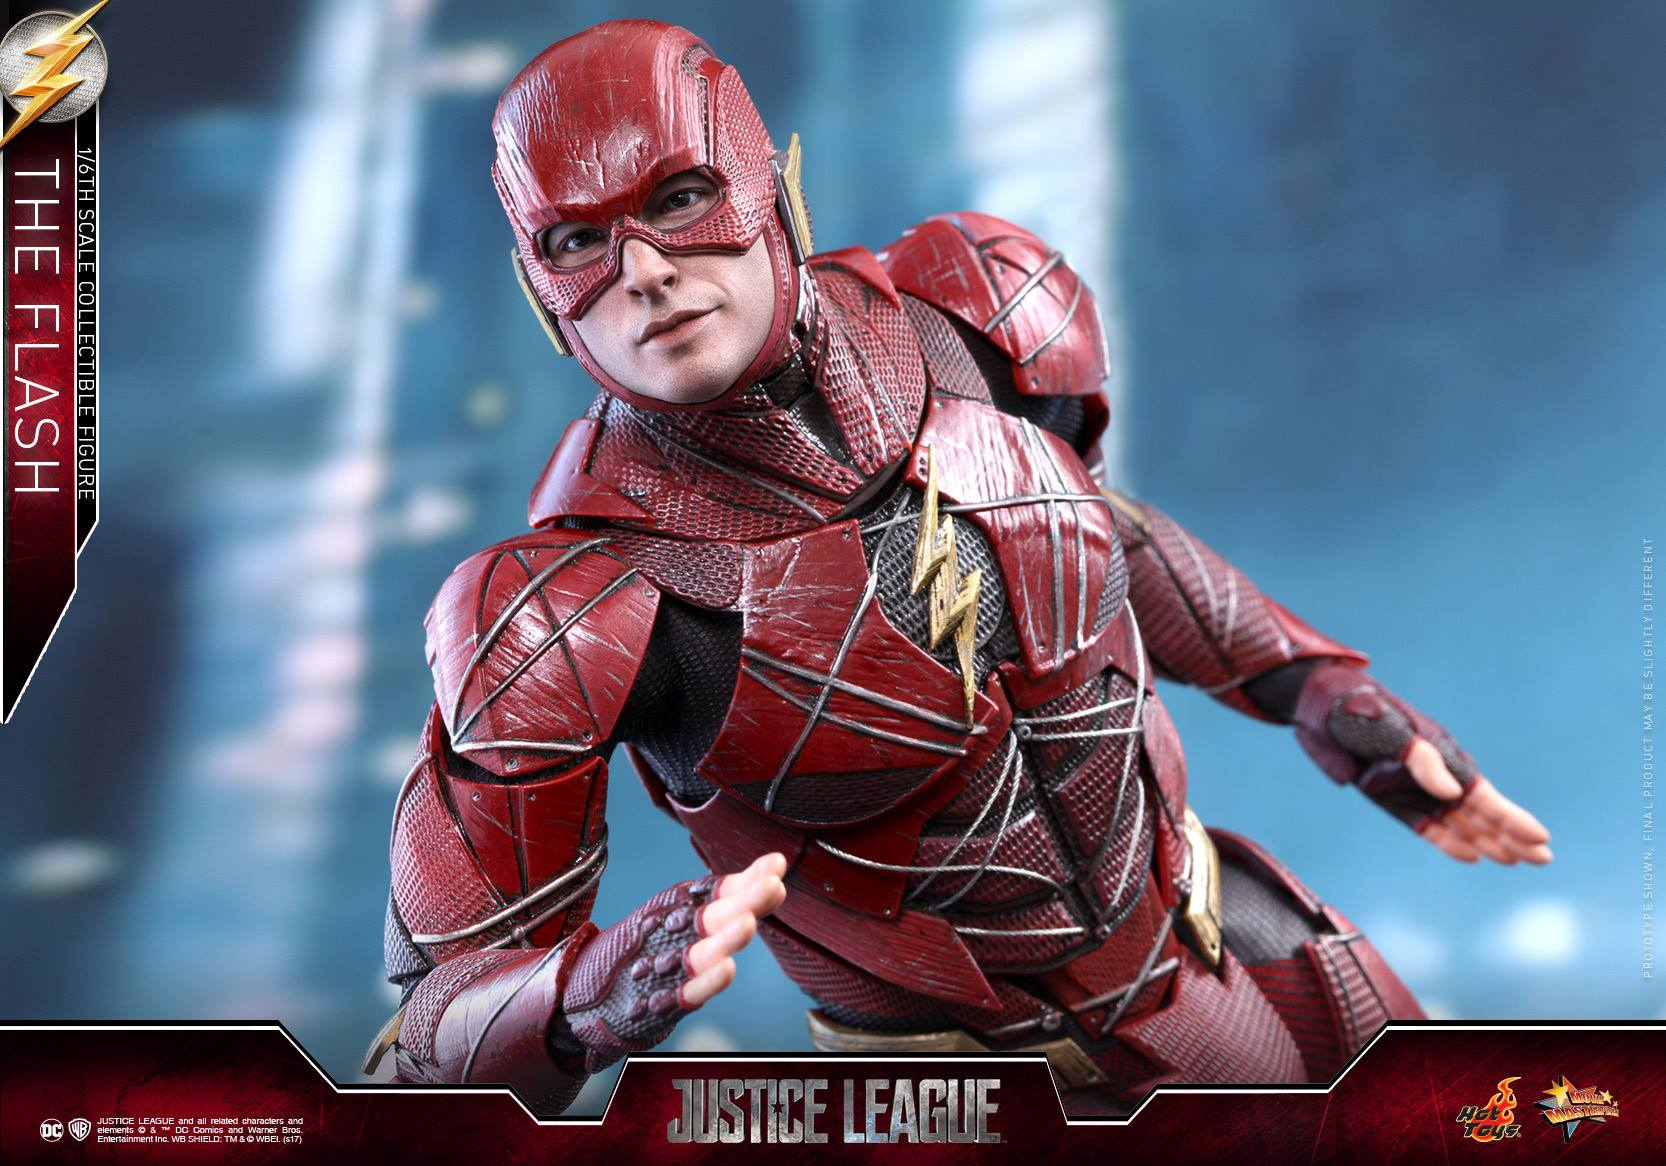 Hot-Toys-Justice-League-The-Flash-003